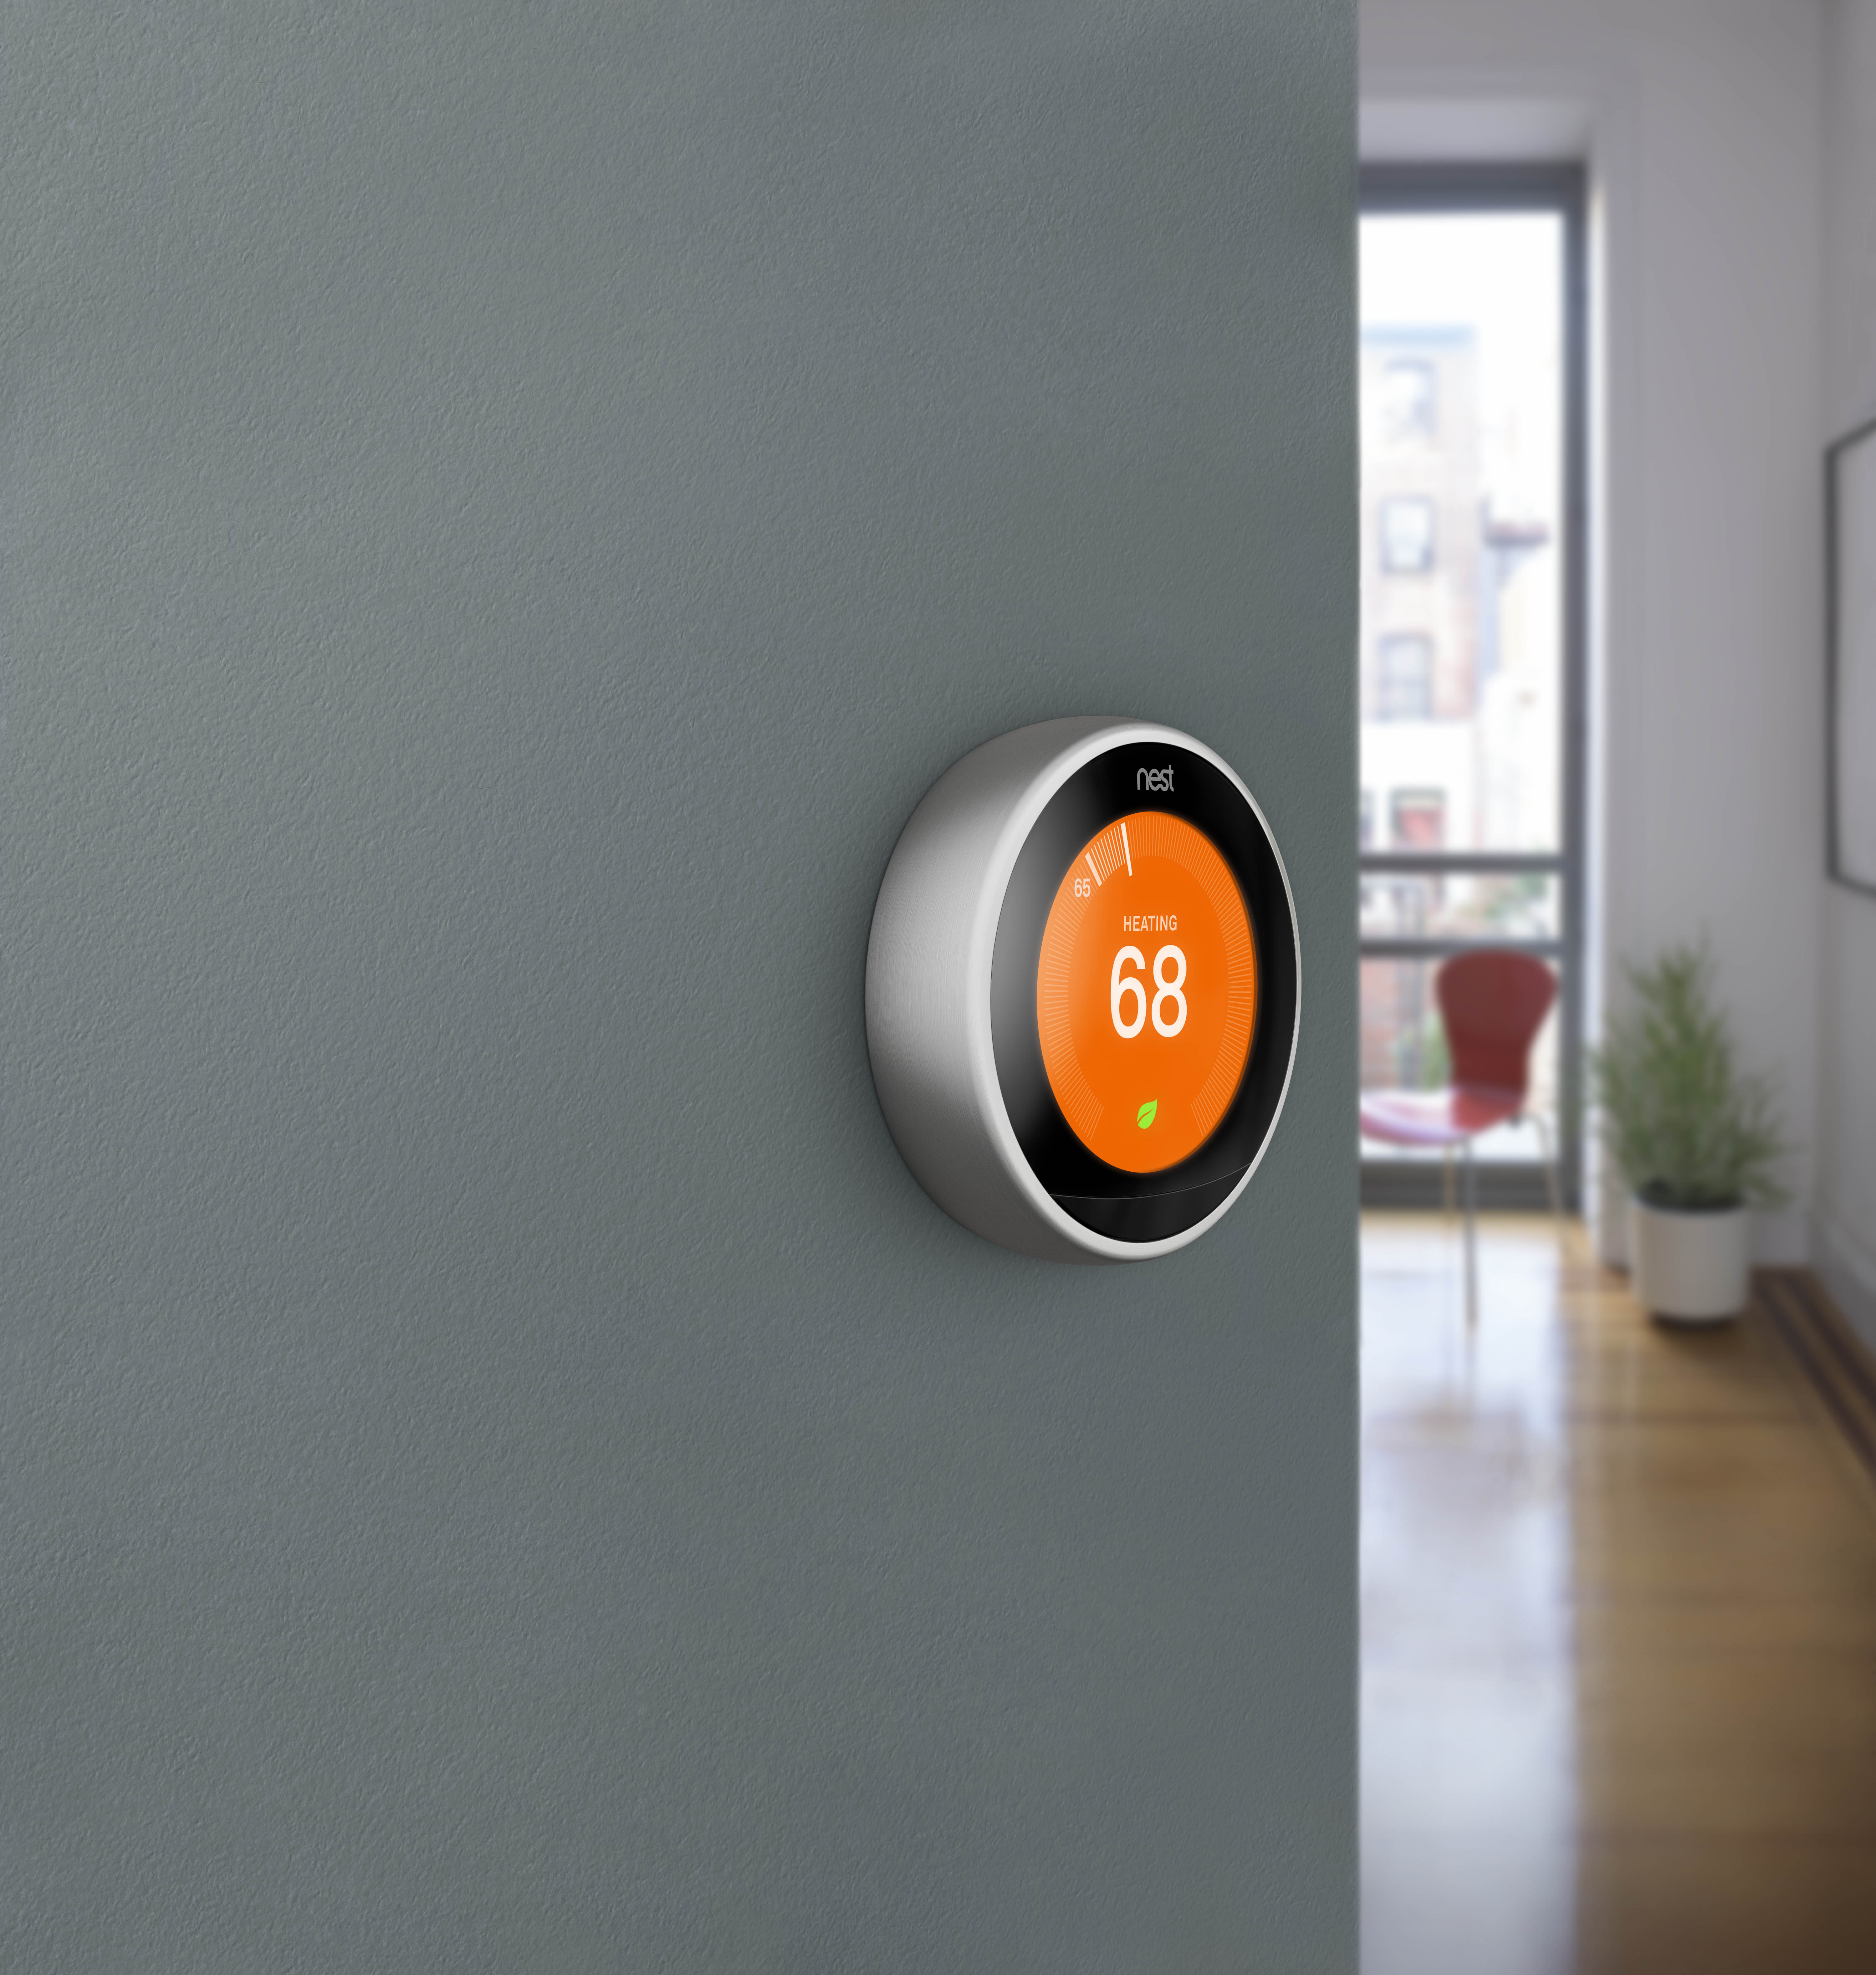 A third-generation Nest Thermostat.